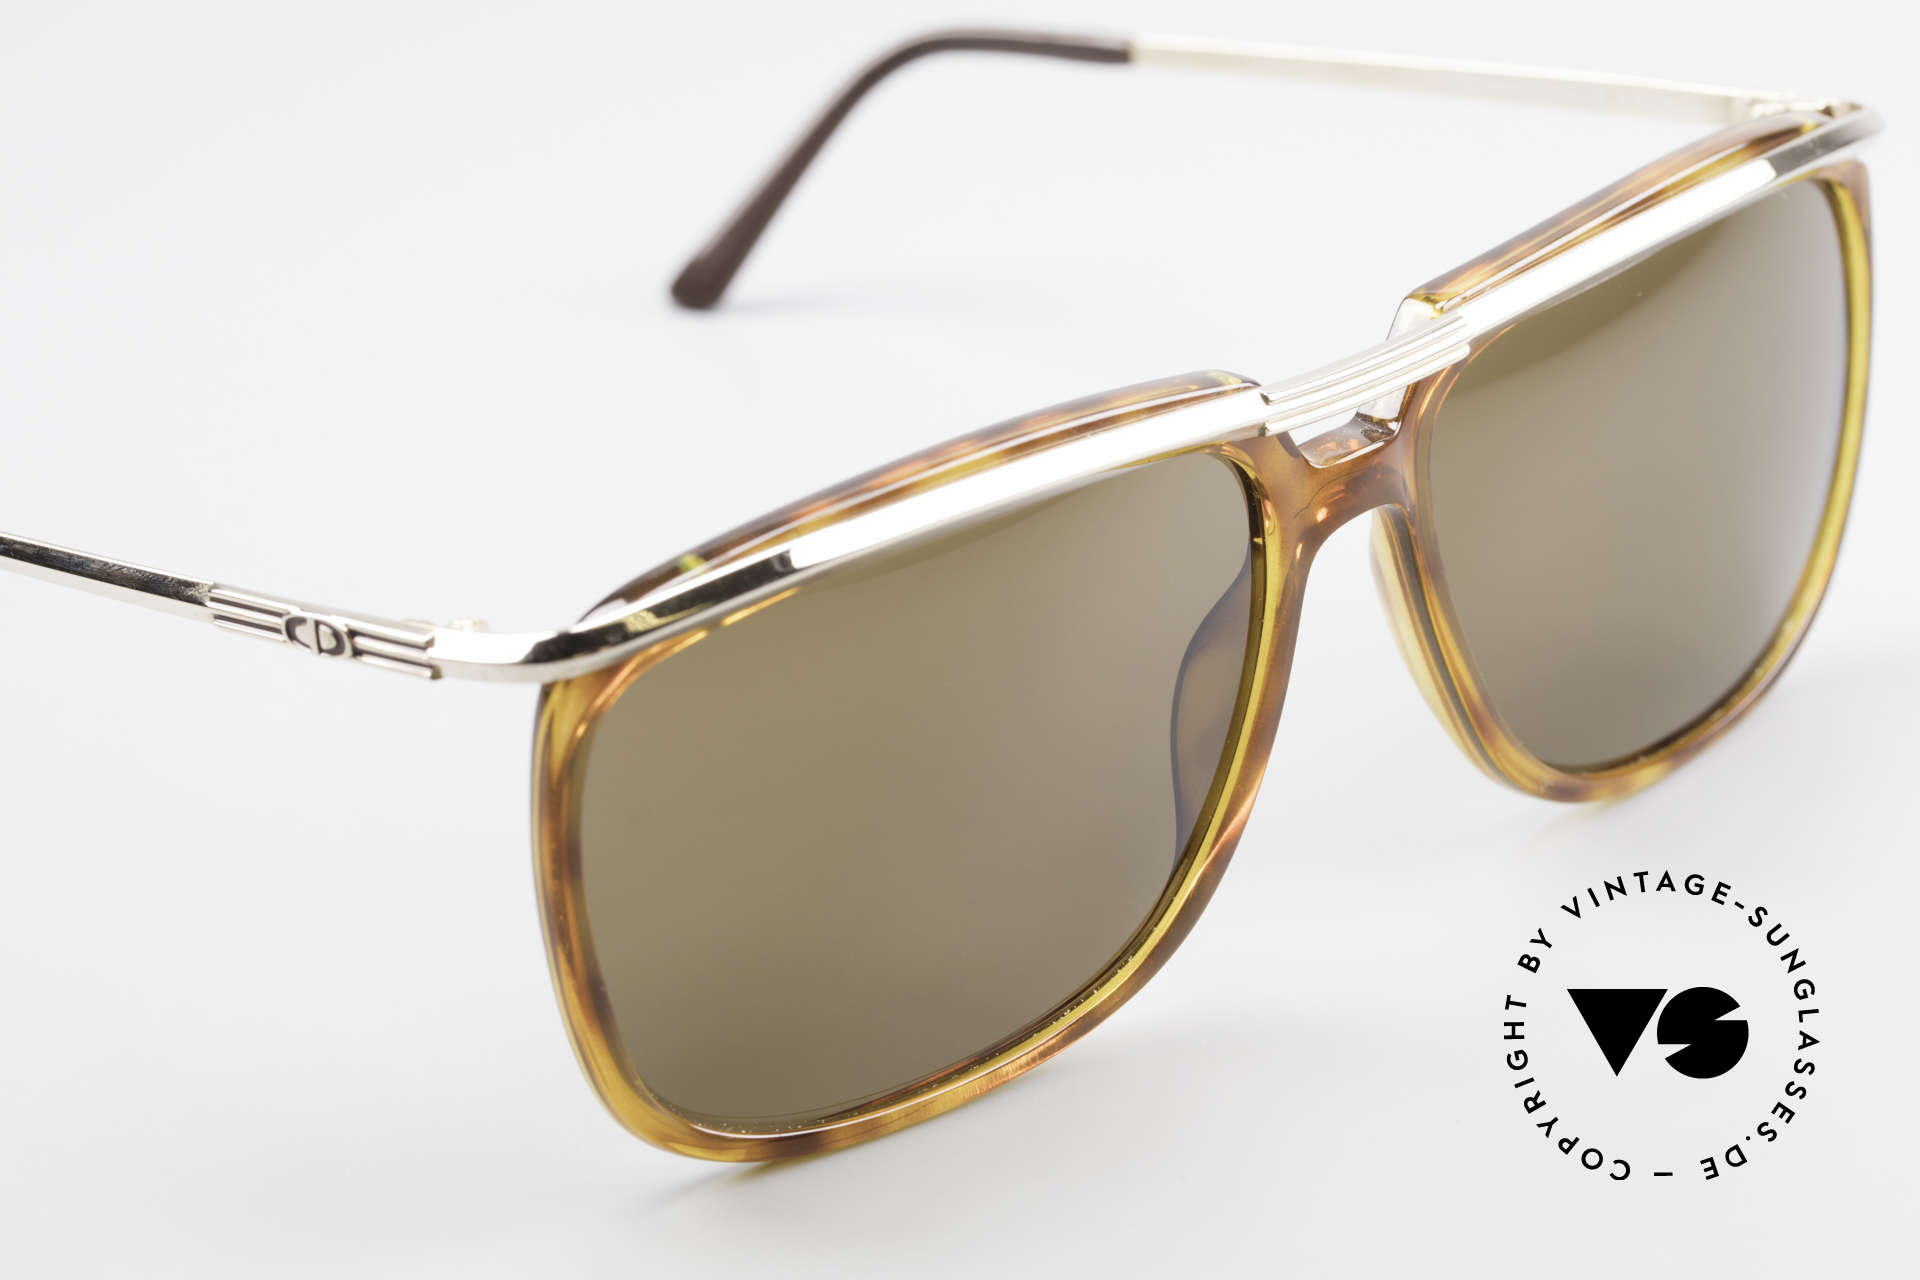 Christian Dior 2698 Old 90's Sunglasses For Men, new old stock (like all our old C. Dior sunglasses), Made for Men